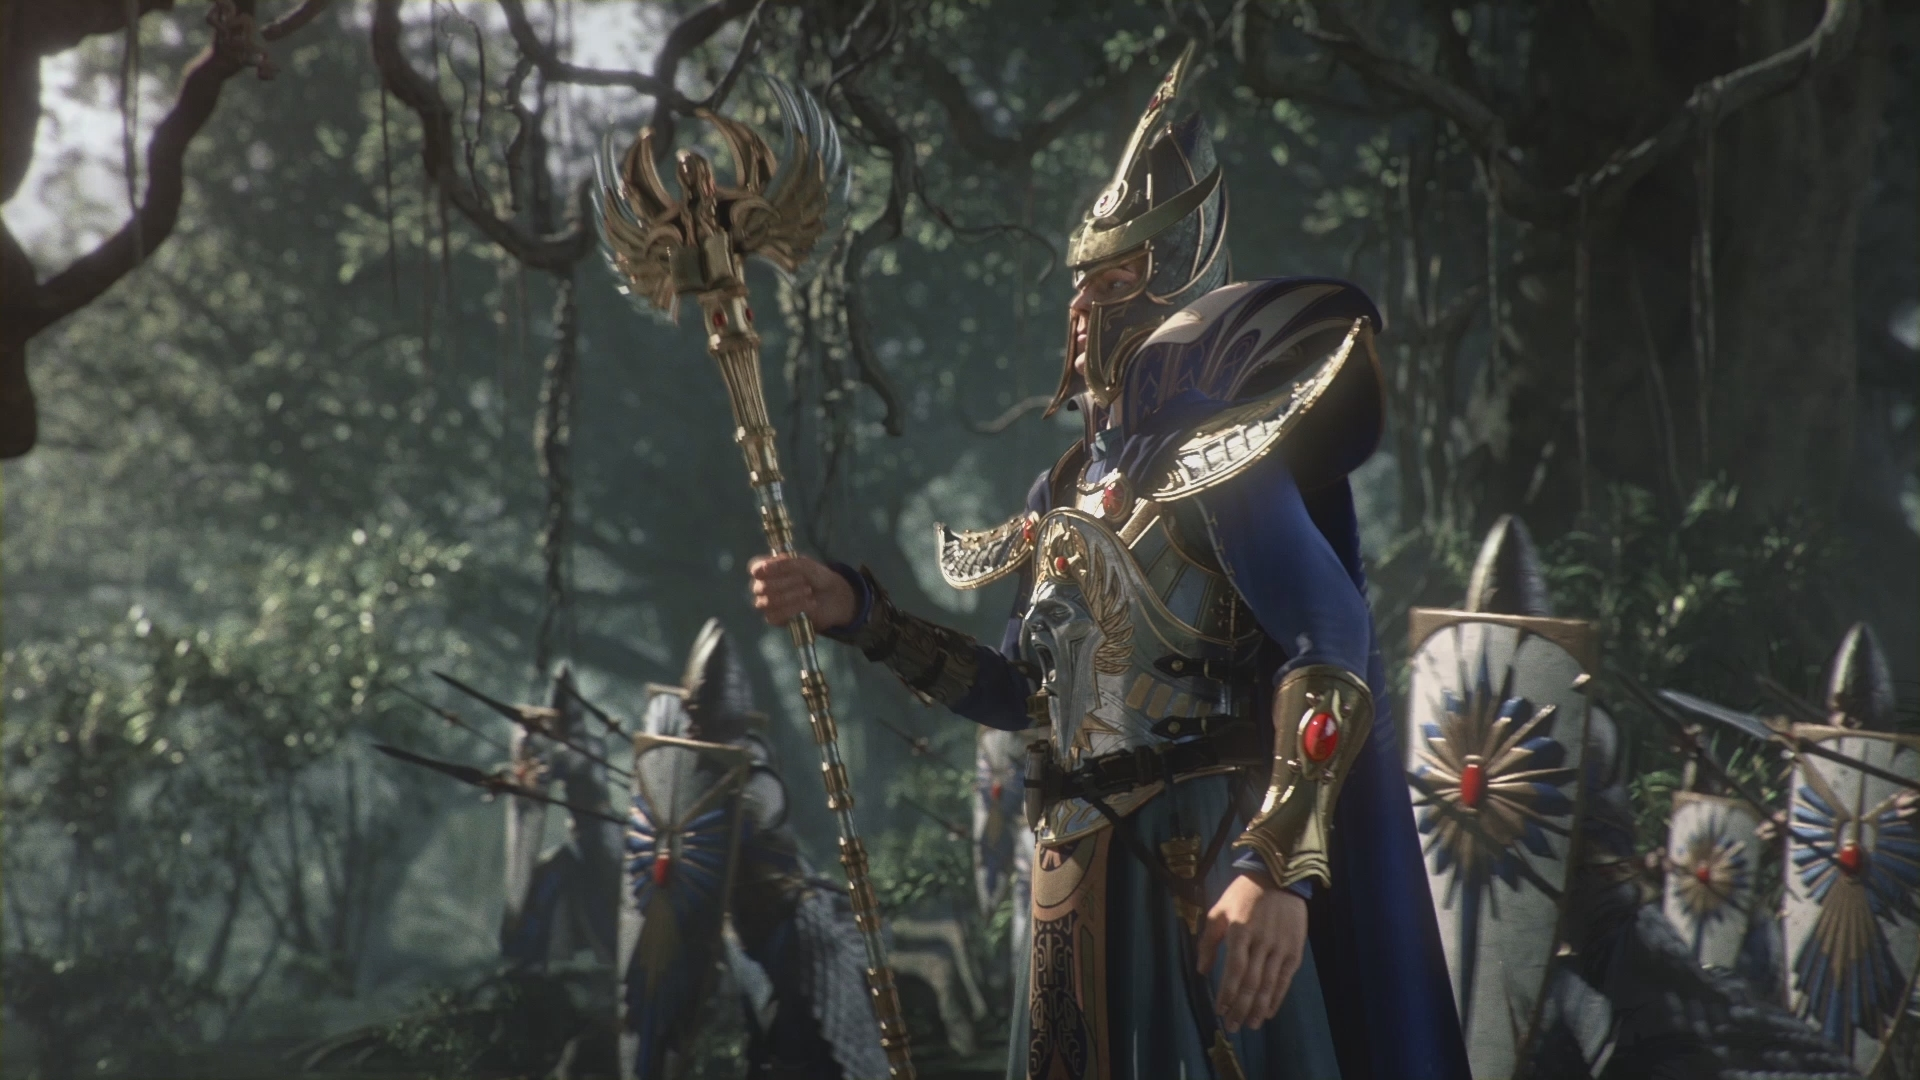 Total War: Warhammer mods are 'theoretically' transferable